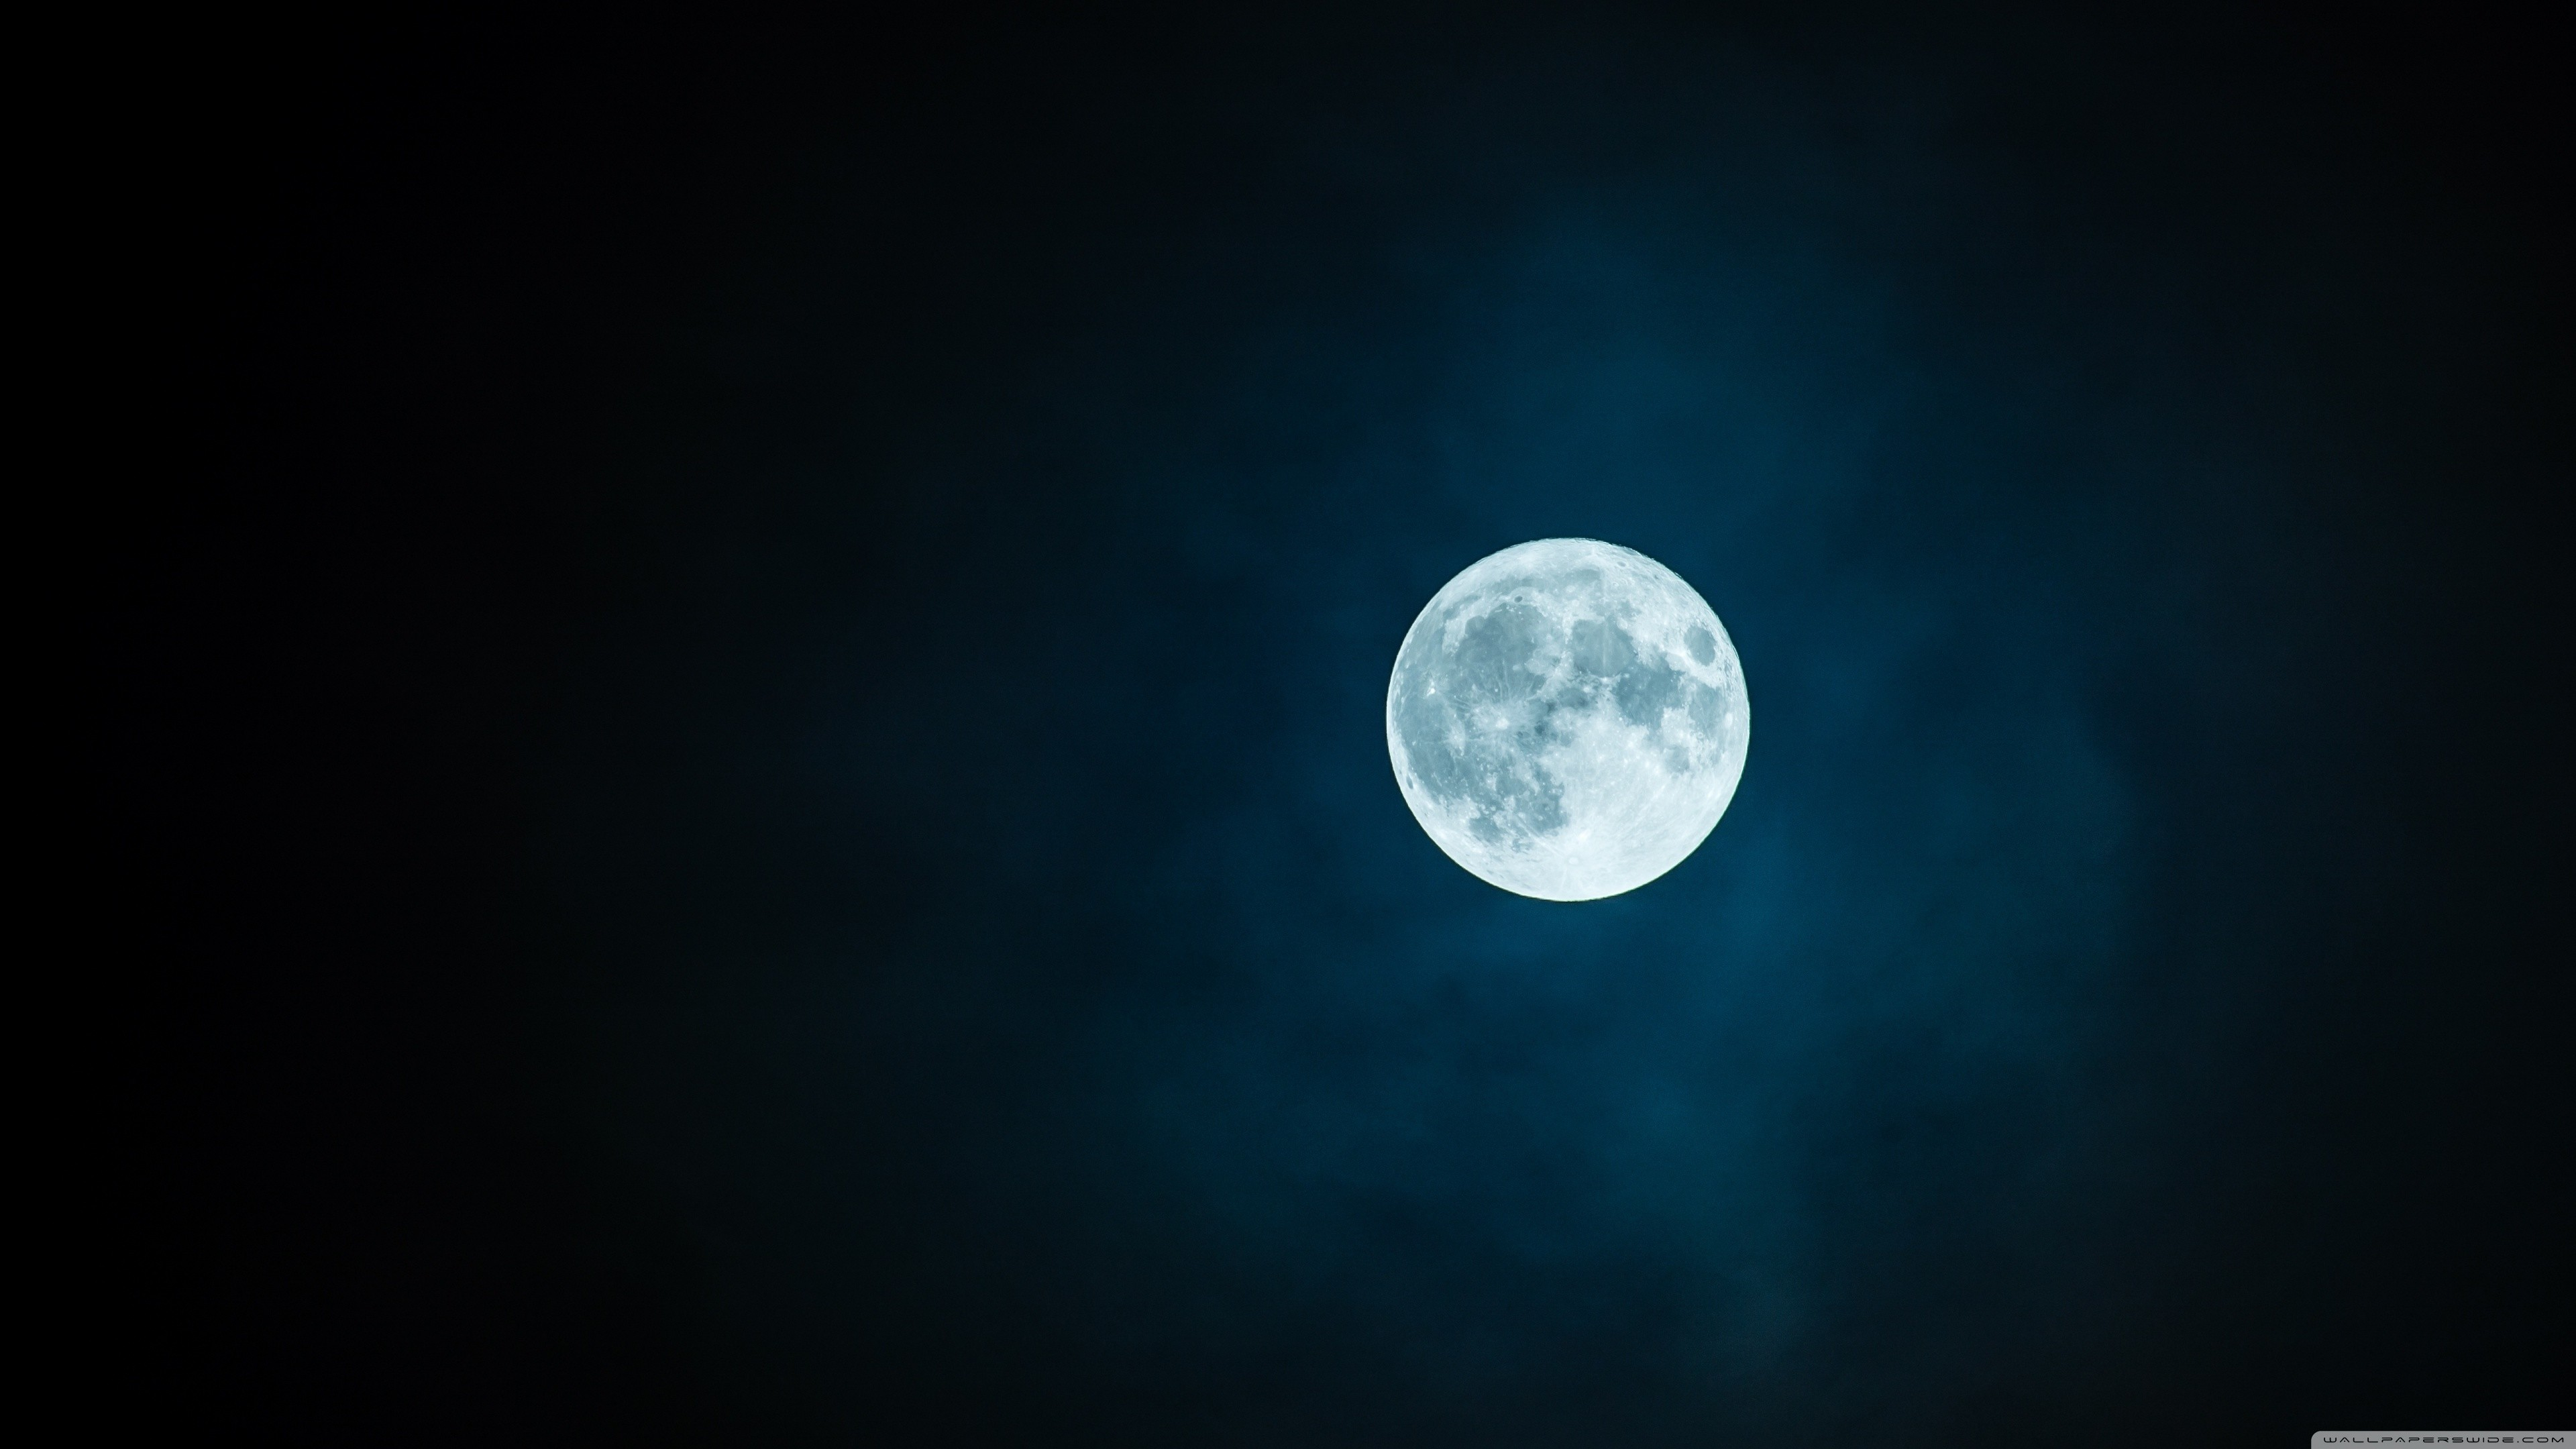 Moon Hd Wallpapers 81 Background Pictures